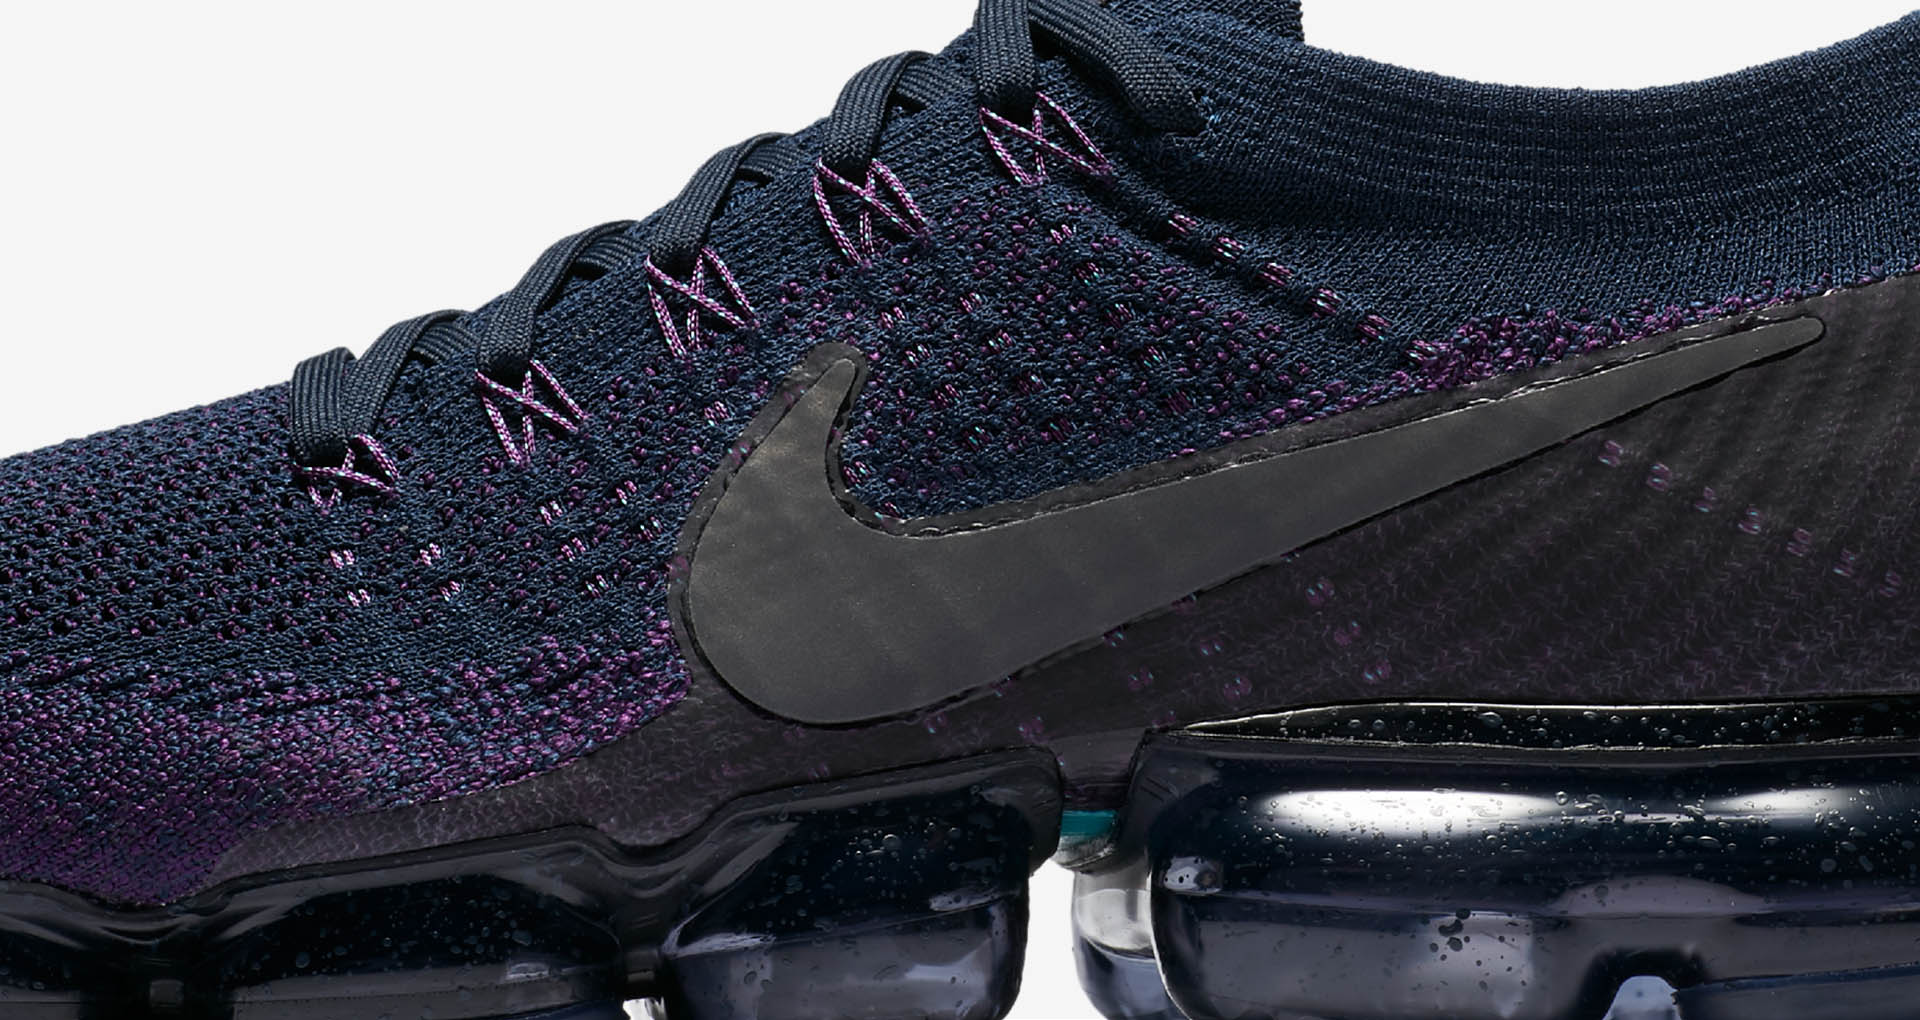 446a5e156ad uk nike air vapormax flyknit 2 dark grey purple 942842 600 mens womens  sneakers d9cb9 b3878  coupon for nike air vapormax college navy 9. sep27  7d255 8c773